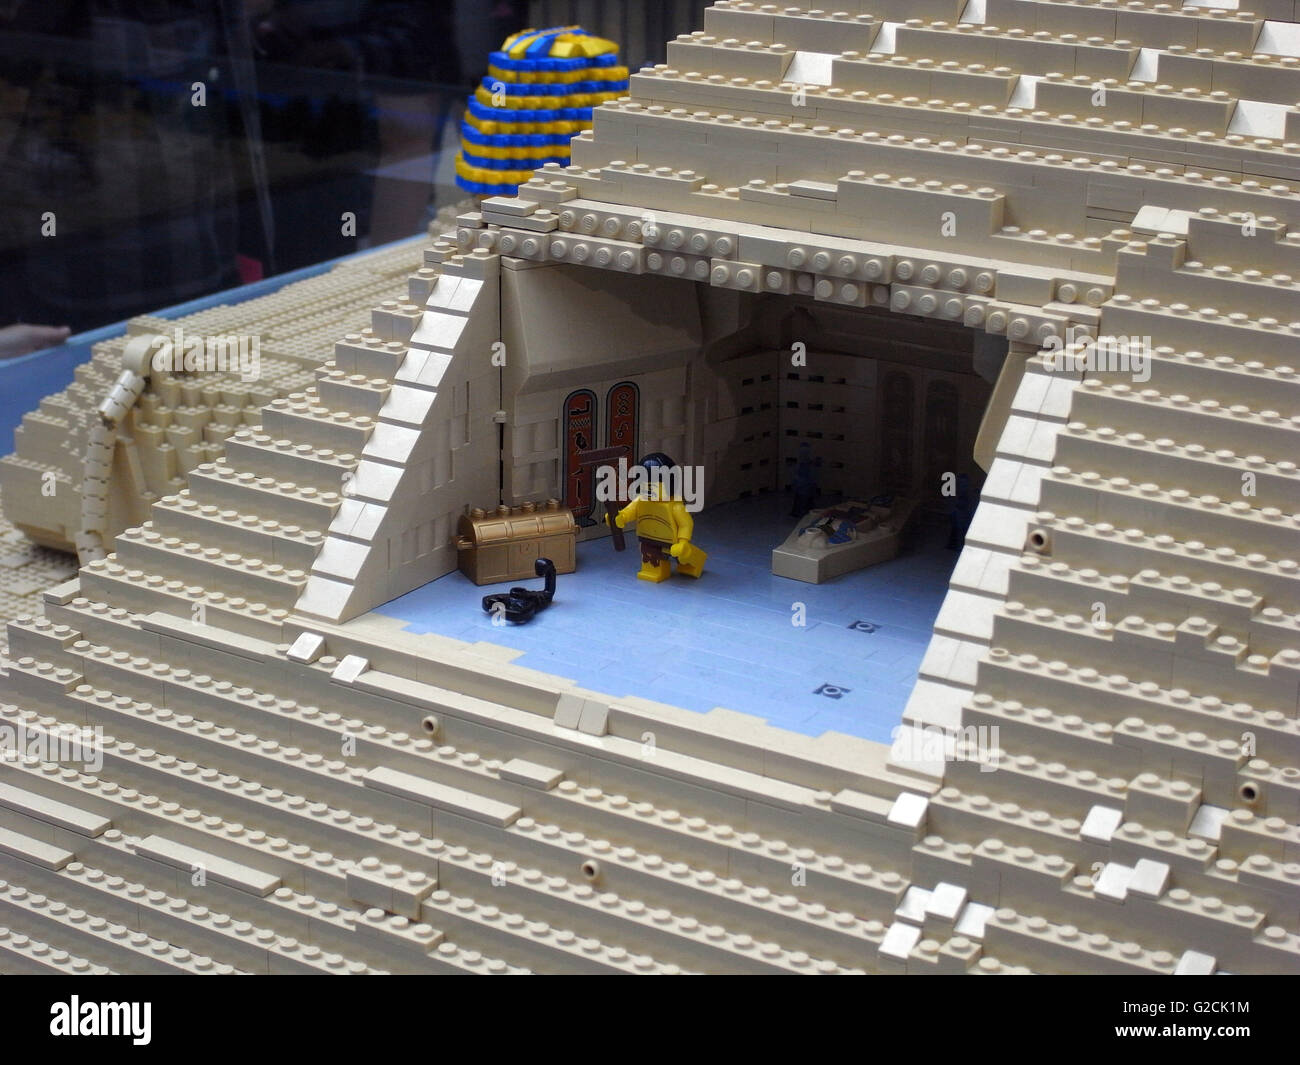 Lego Model Egypt Egyptian build ancient pyramid Sphinx Pharaoh engineering horse slave old time Chamber of Secrets - Stock Image